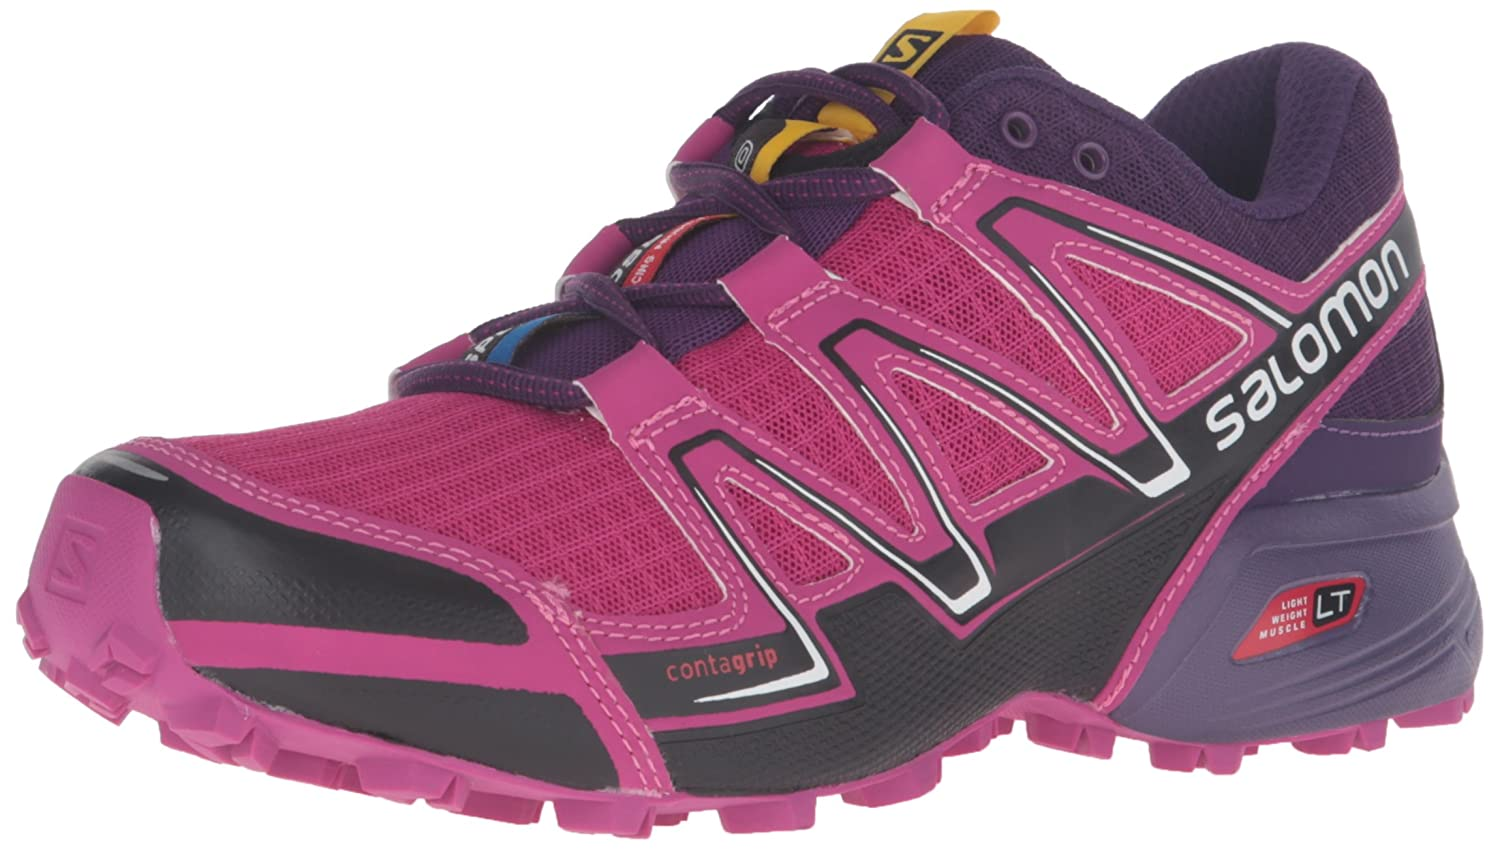 Salomon Speedcross Vario Women's Trail Running Shoes B017USWV92 5 B(M) US|Deep Dahlia/Black/Cosmic Purple